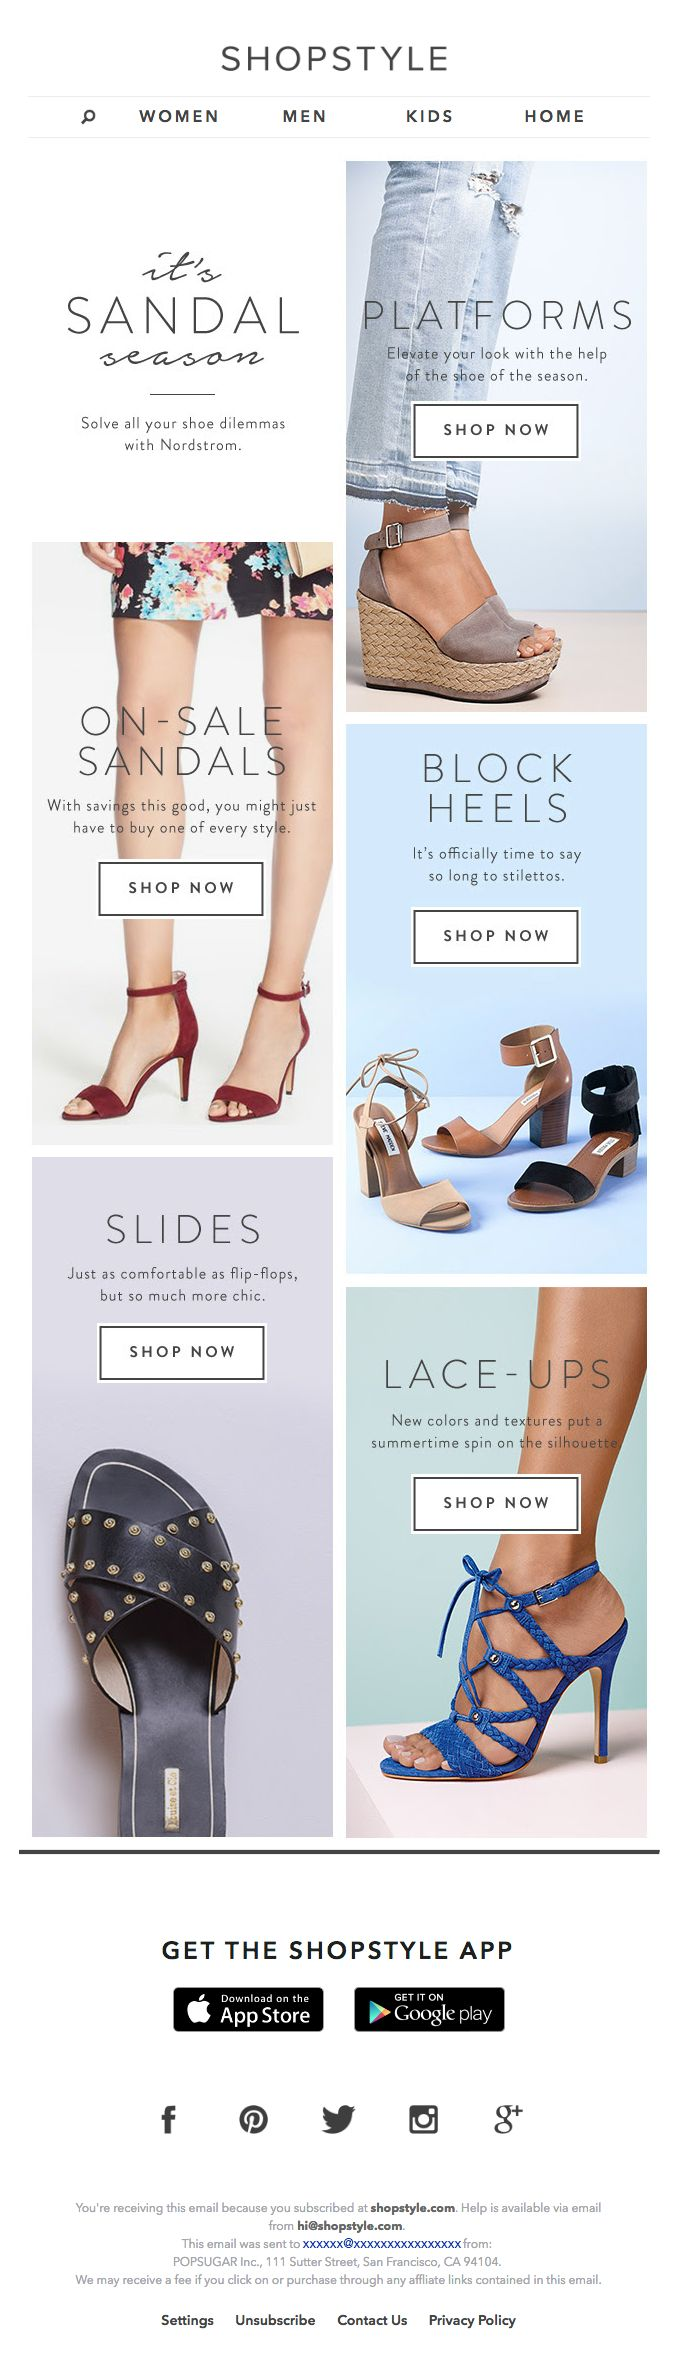 newsletter | fashion email | fashion design | email | email marketing | email inspiration | e-mail